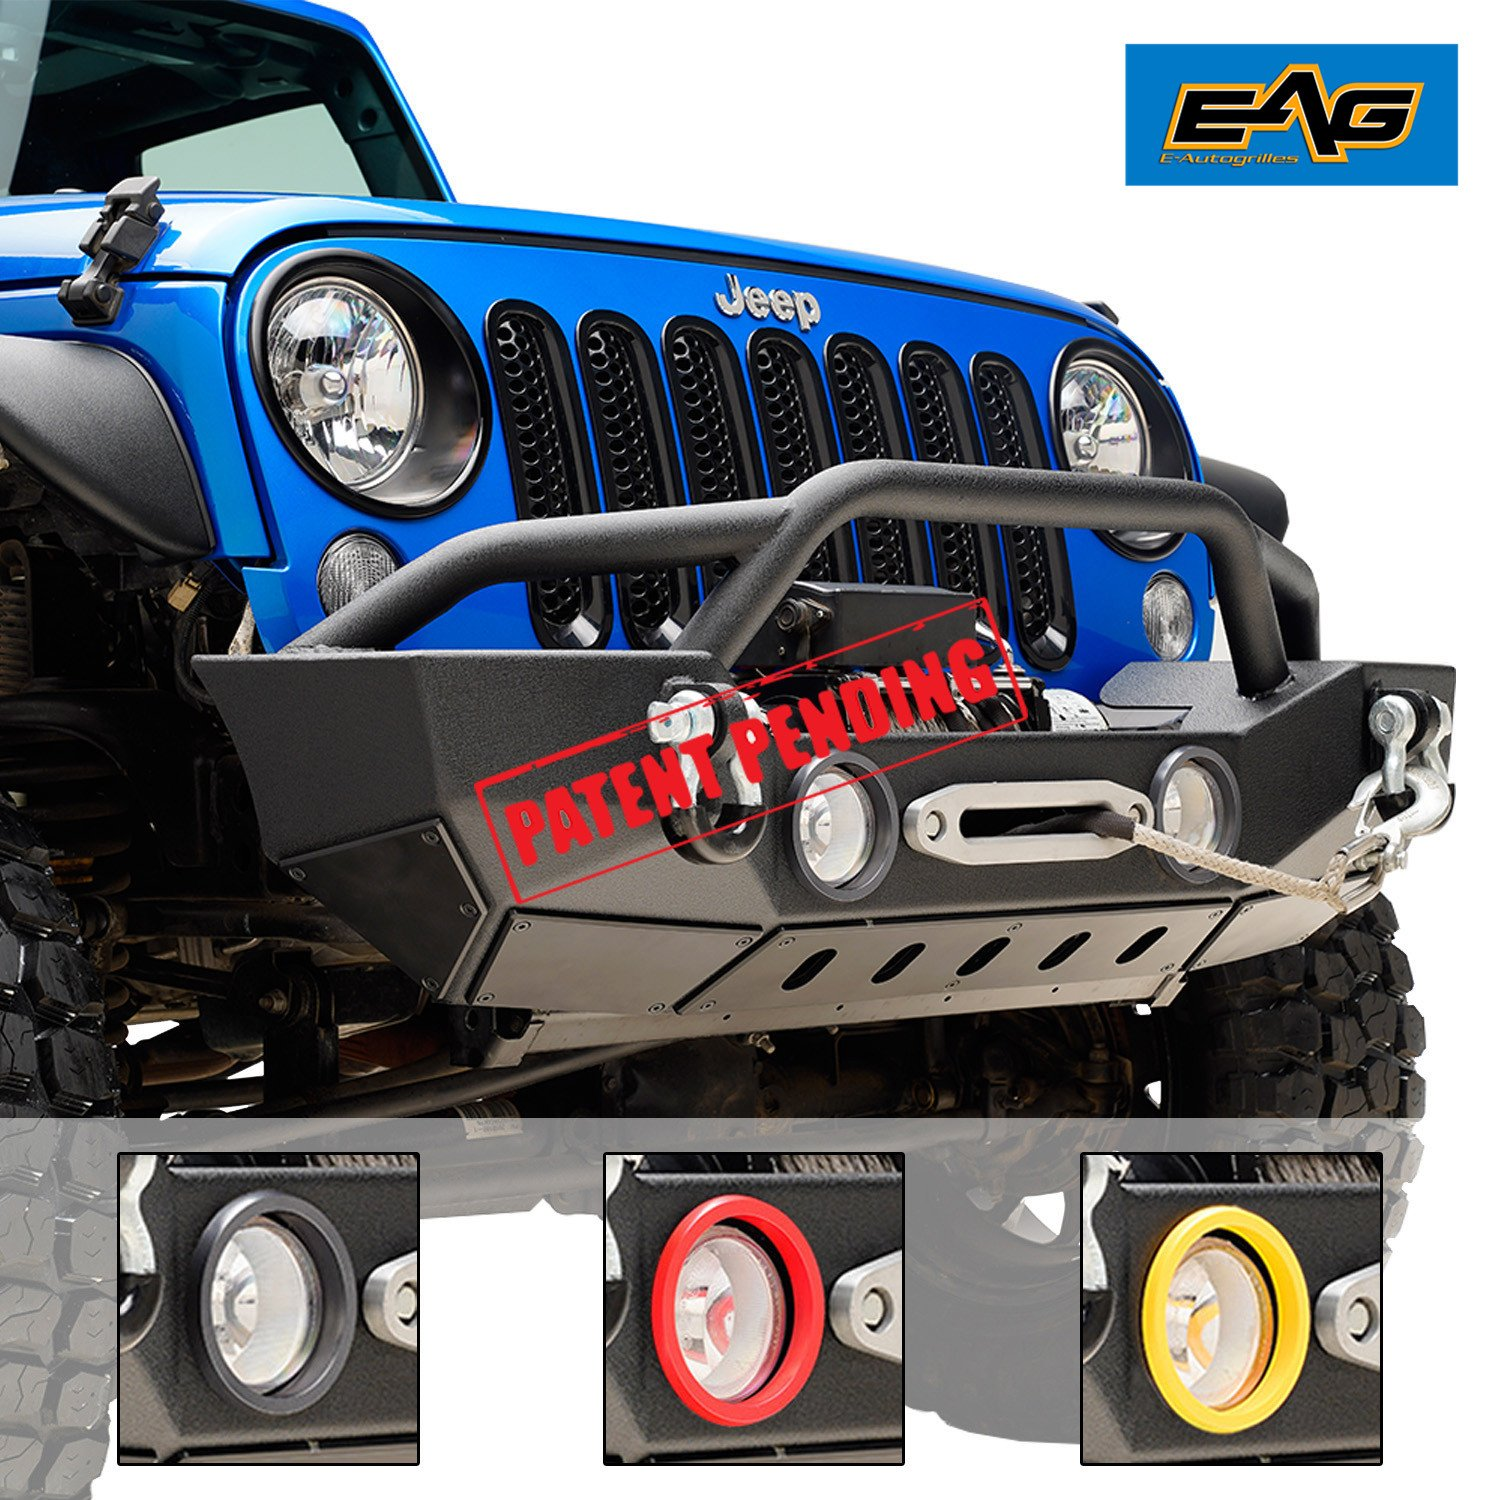 Eag 07 18 Jeep Wrangler Jk Front Bumper Rock Crawler With Oe Fog Lights Light Housing And